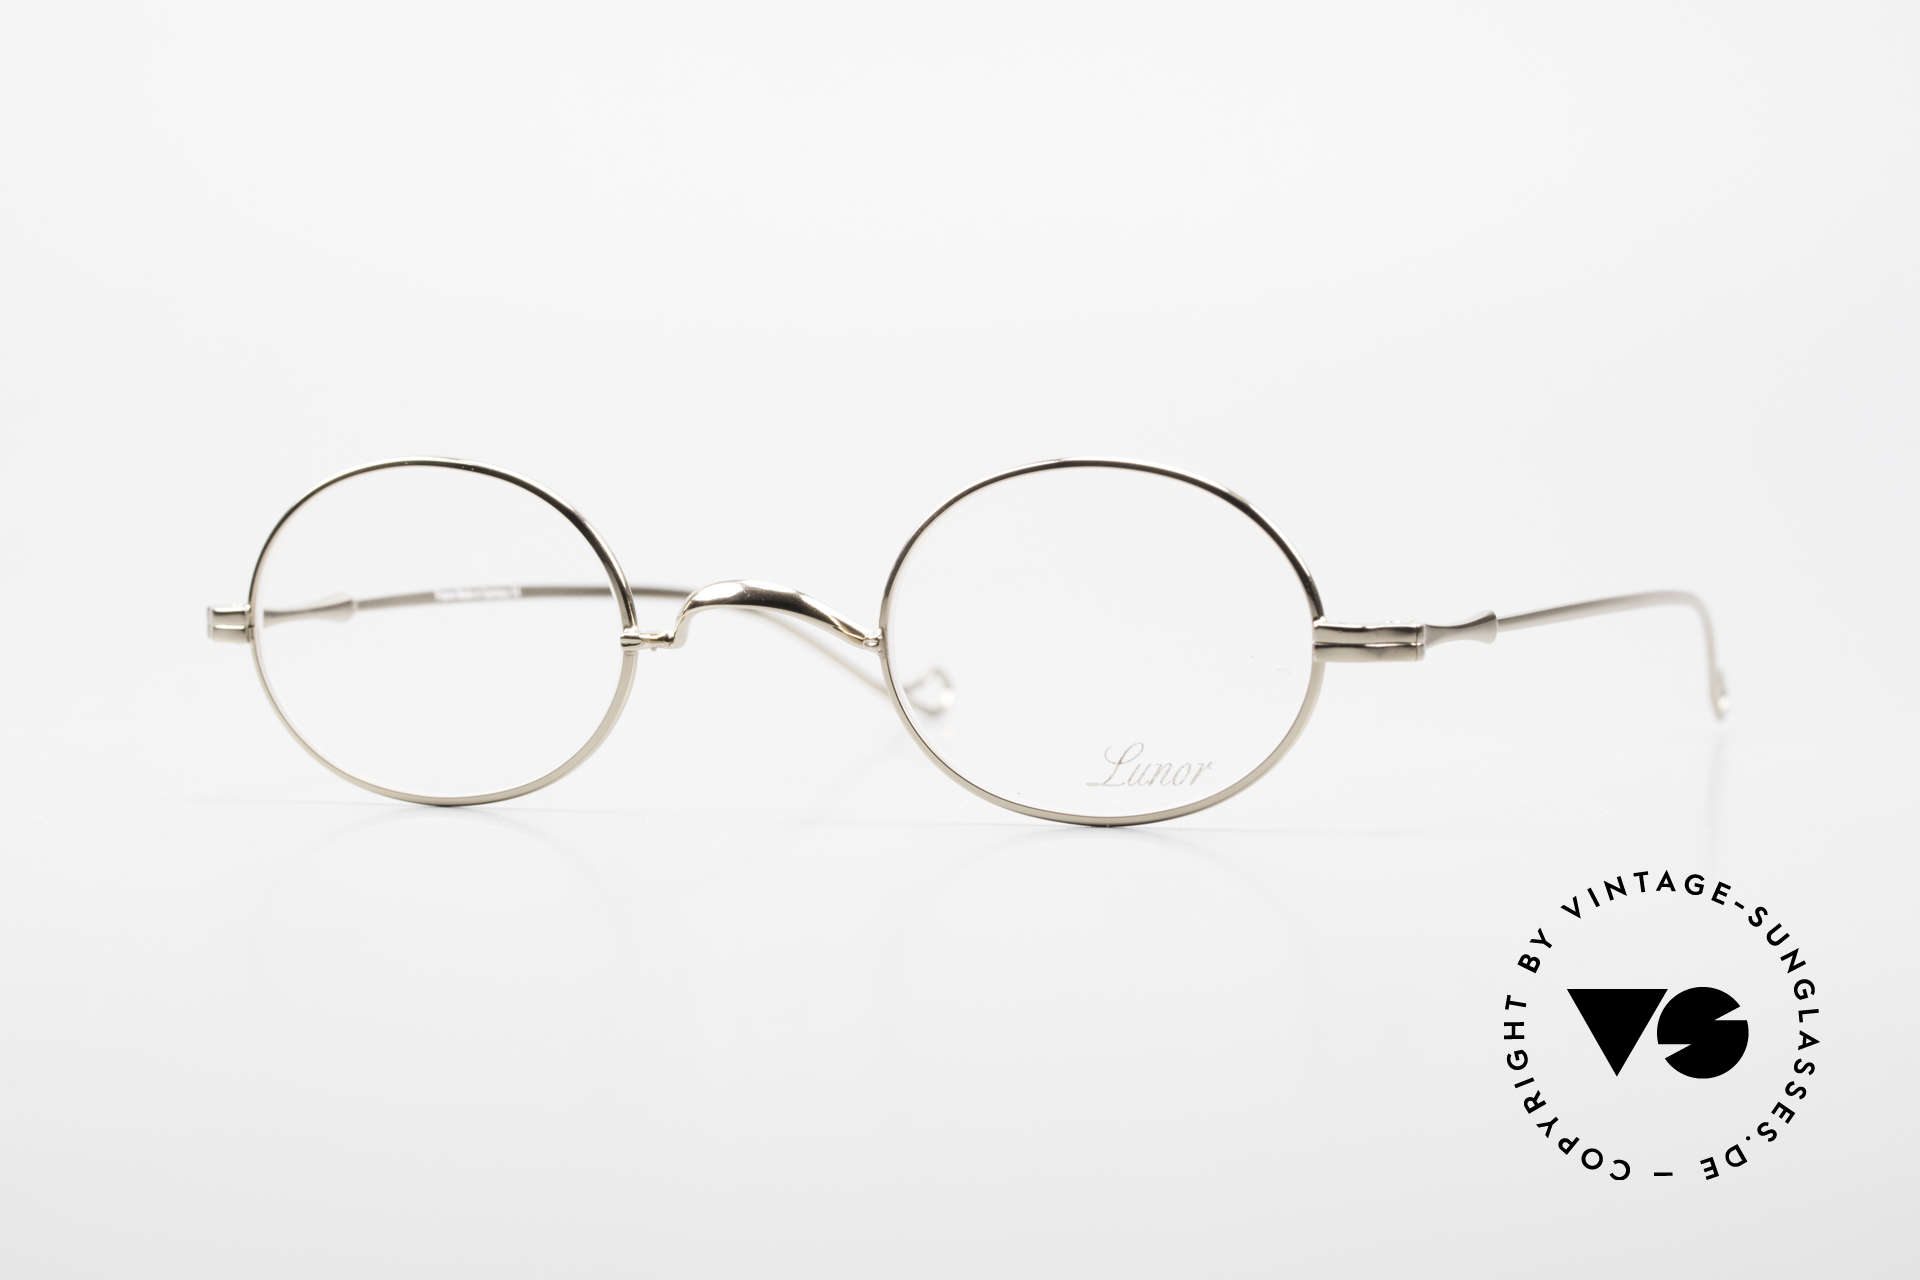 Lunor II 10 Oval Lunor Frame Gold Plated, oval vintage glasses of the Lunor II Series, full rimmed, Made for Men and Women